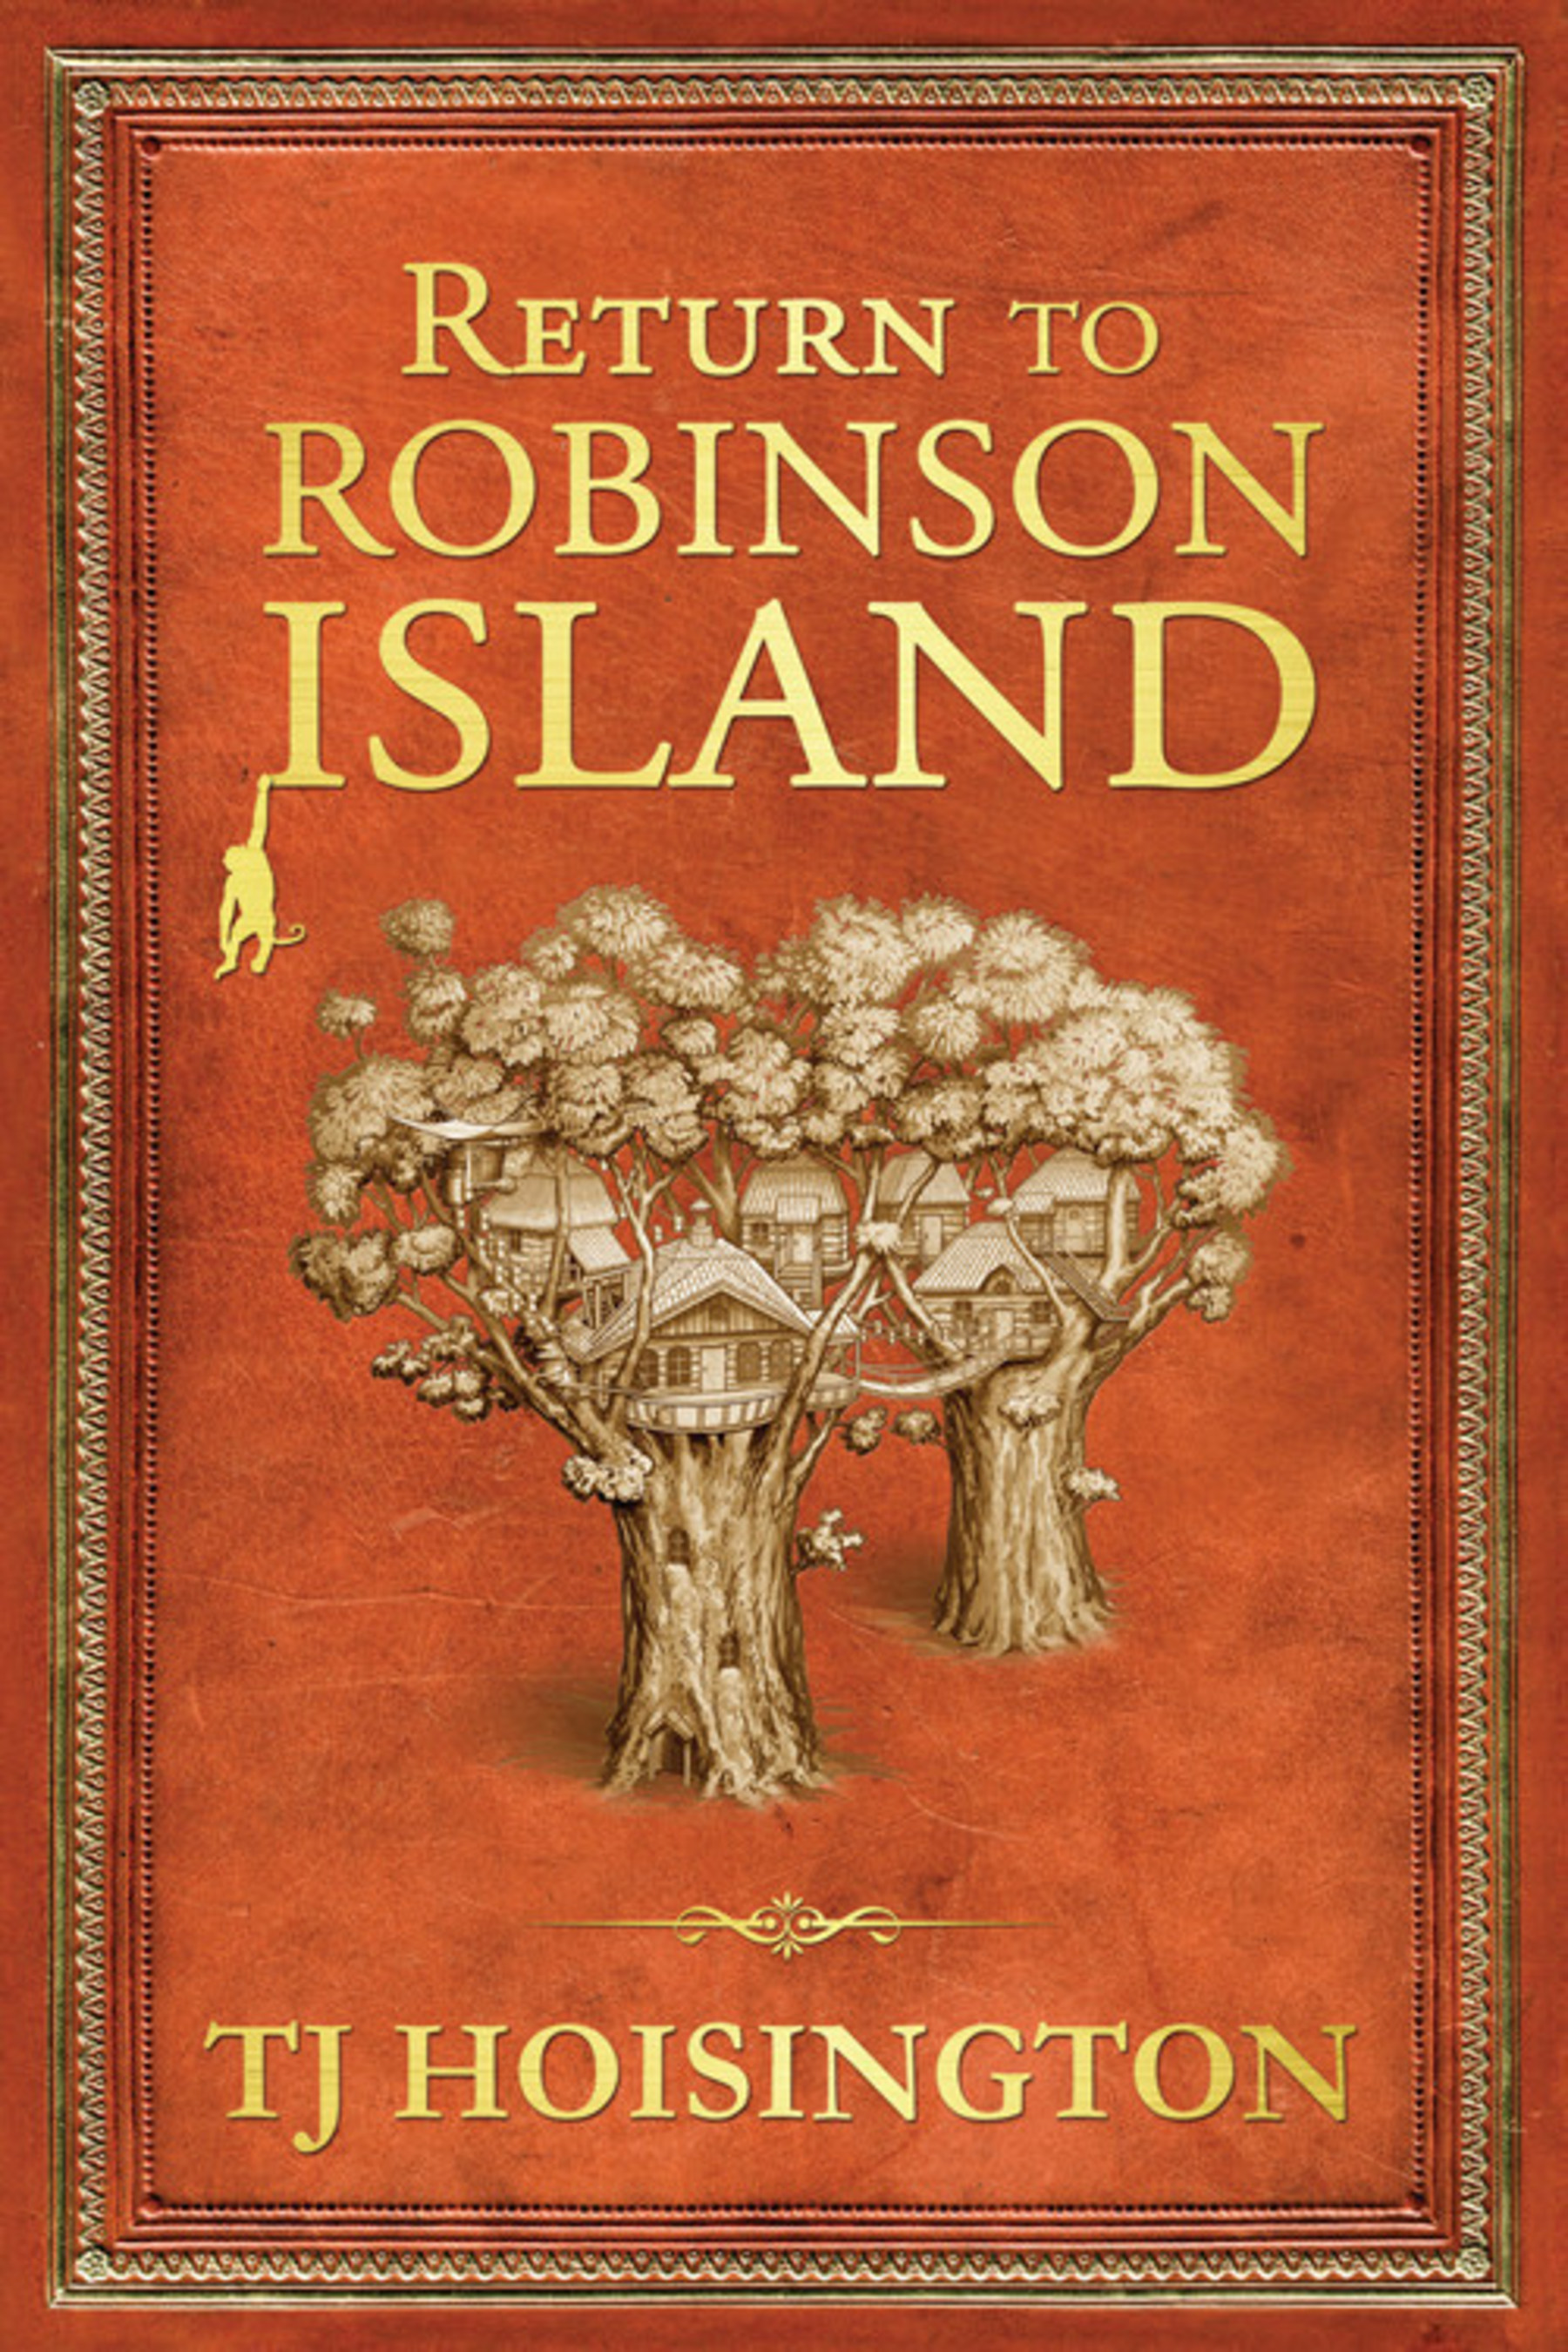 Return to Robinson Island book cover